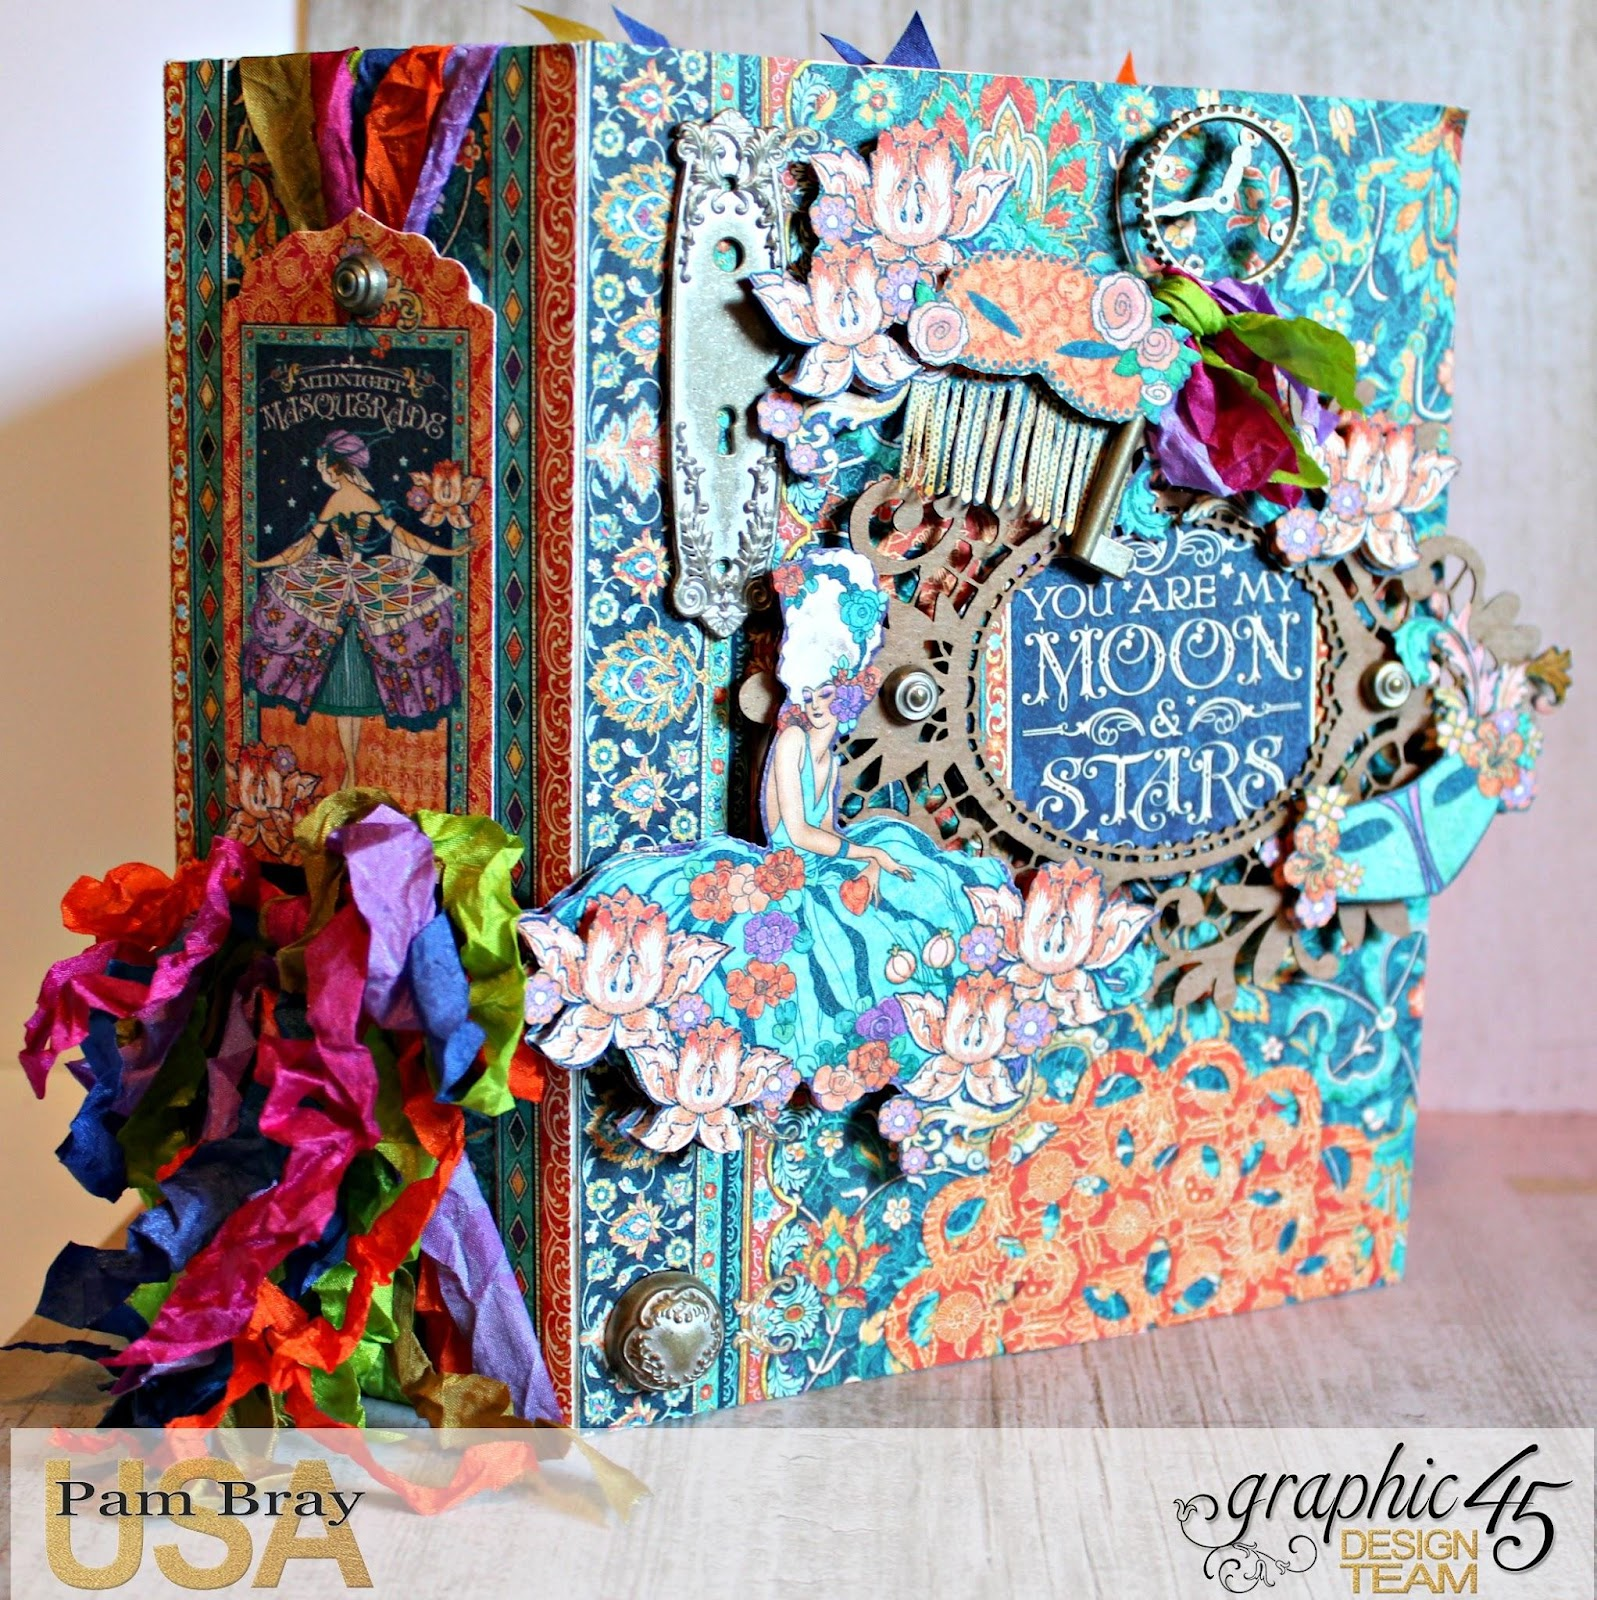 2017 G45 Brand Ambassadors- 2017 Pam Bray  - October 2017 - Midnight Masquerade Album with Tutorial using Ephemera and Brads - Photo 2 _7839.jpg